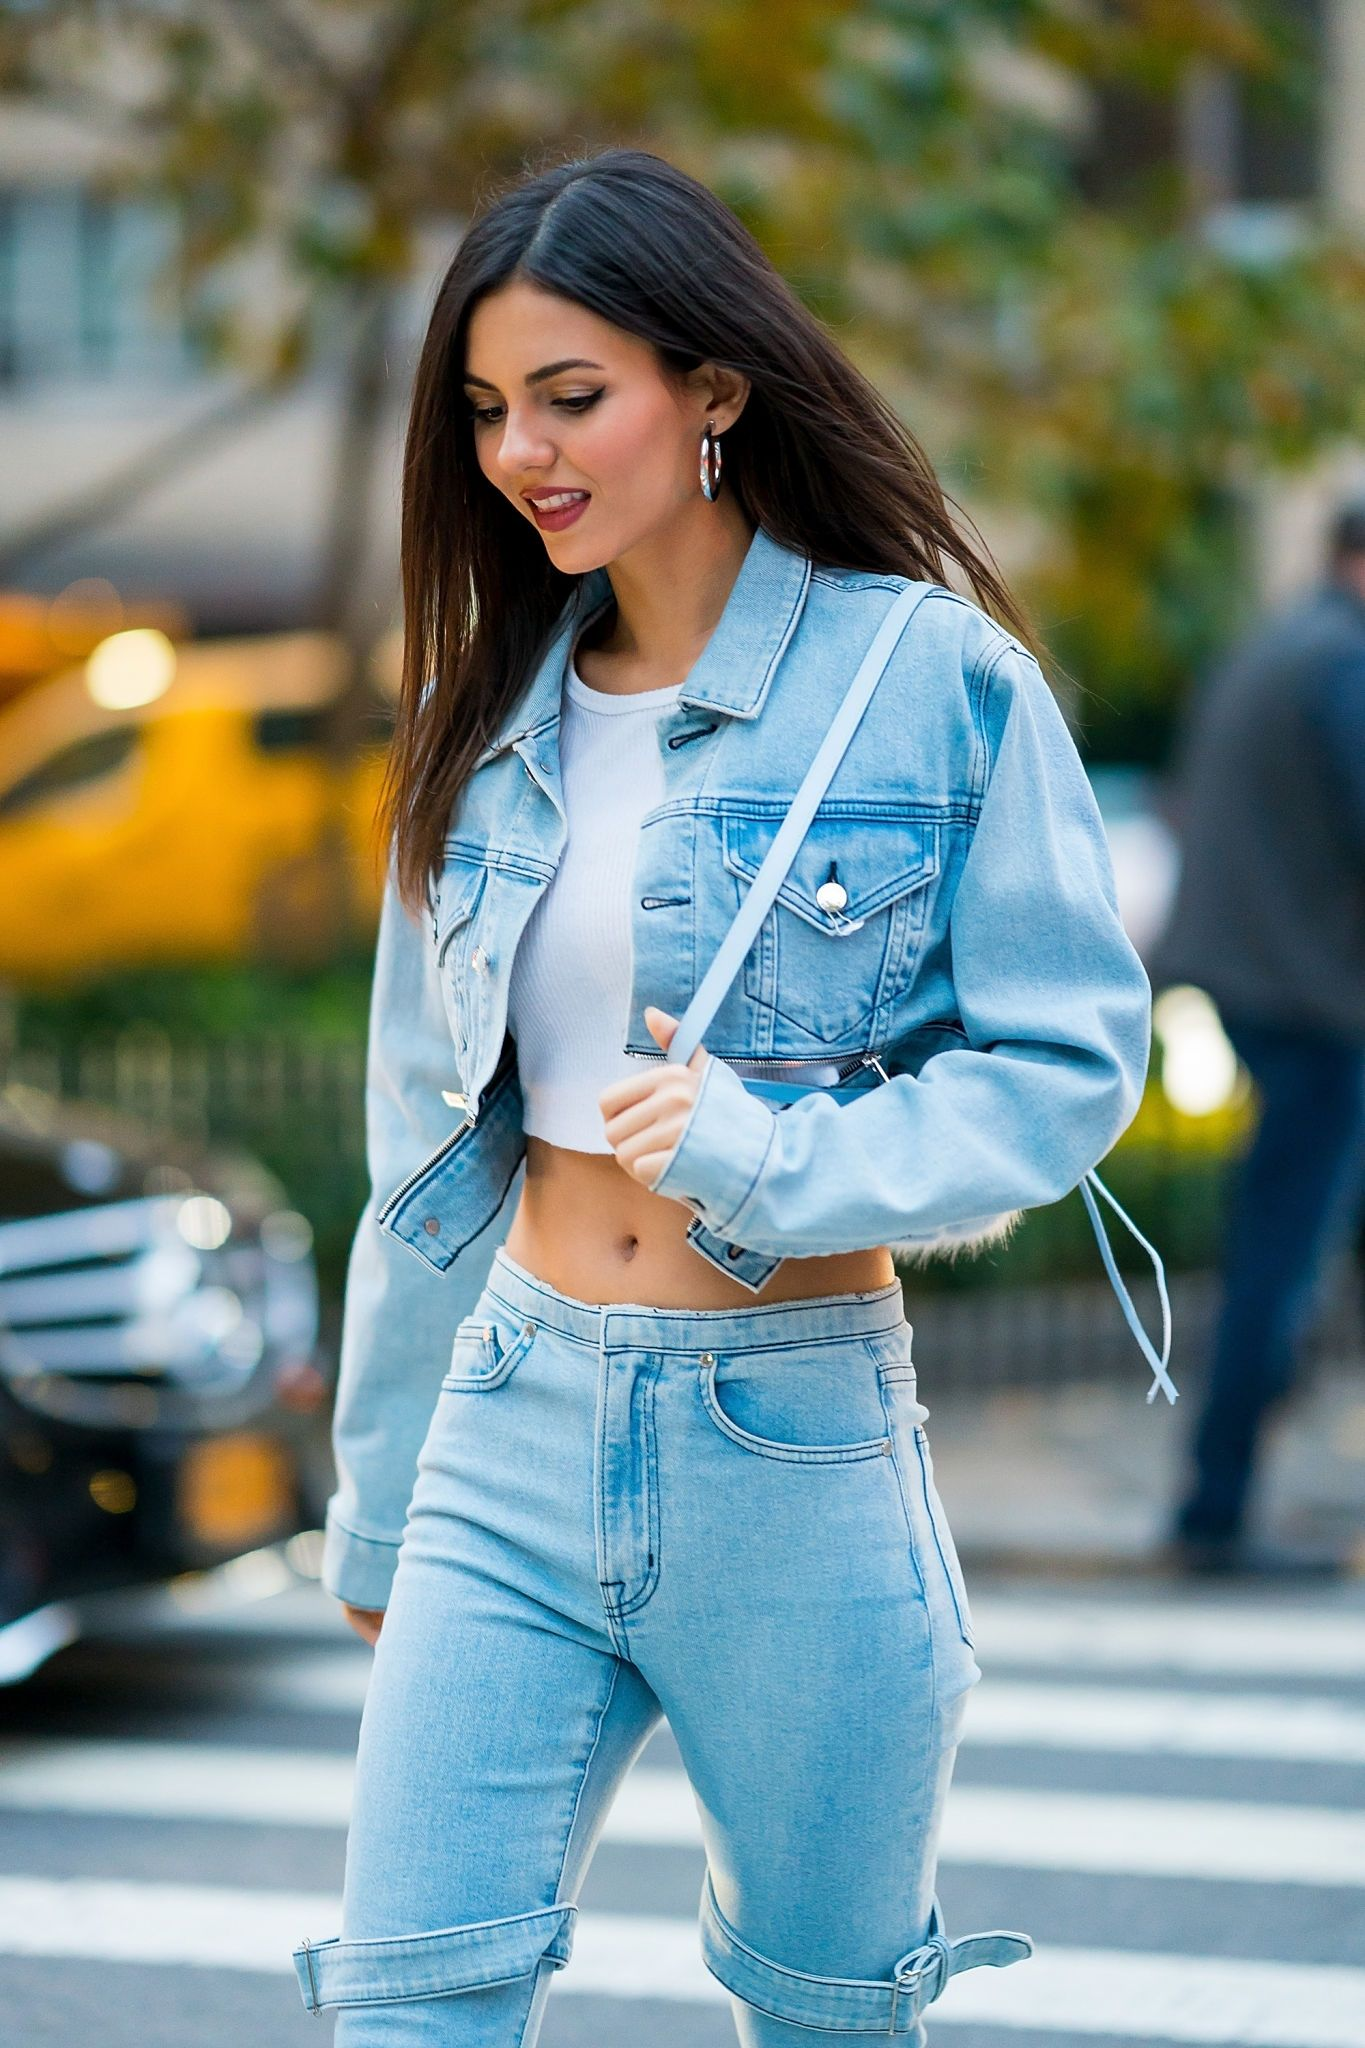 Victoria Justice - Sexy Denim Look - Sexy Actress Pictures | Hot Actress Pictures - ActressSnaps.com